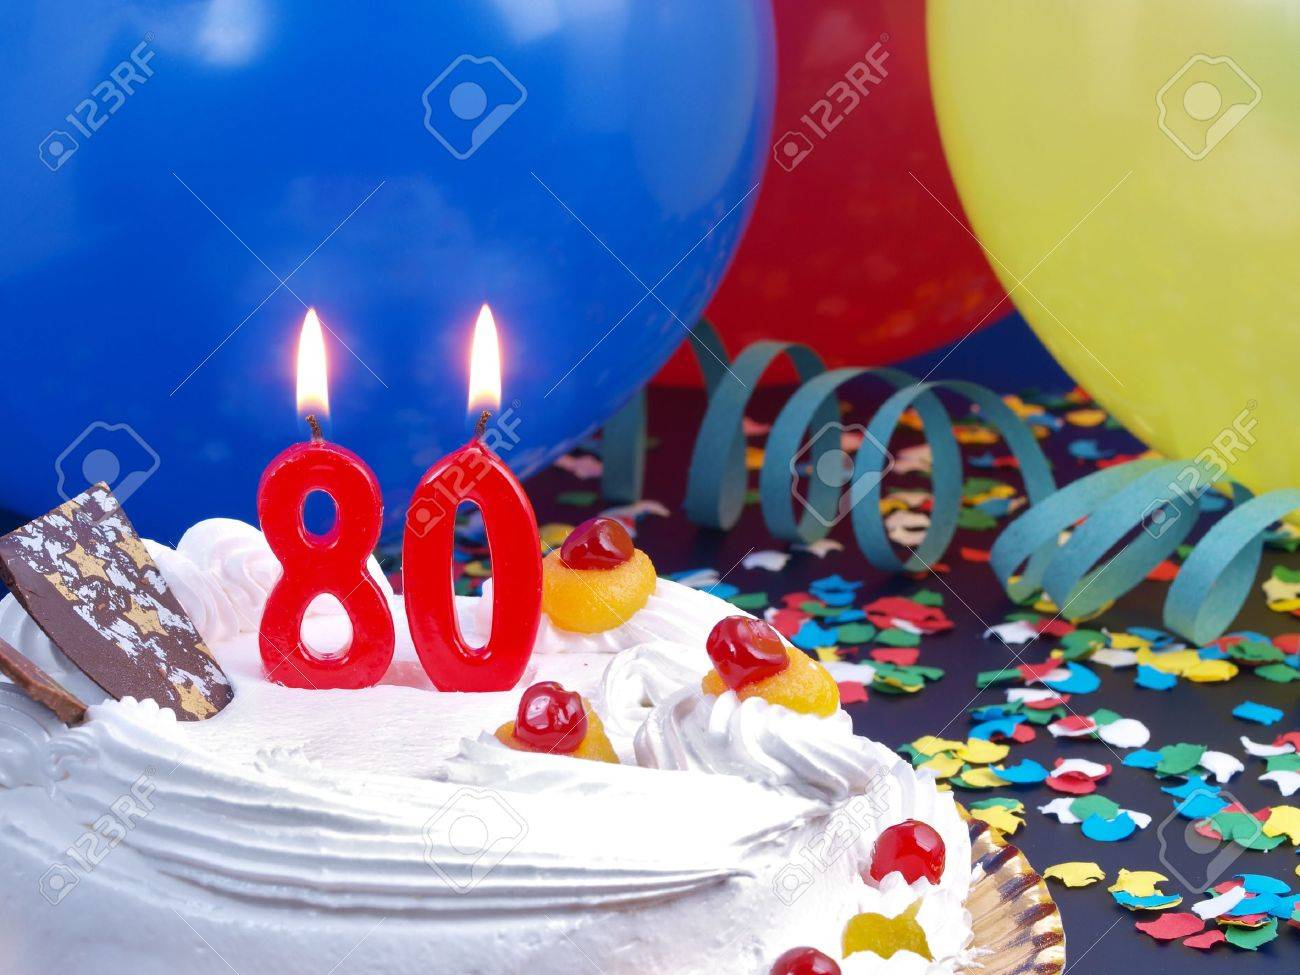 Birthday Cake With Red Candles Showing Nr 80 Stock Photo